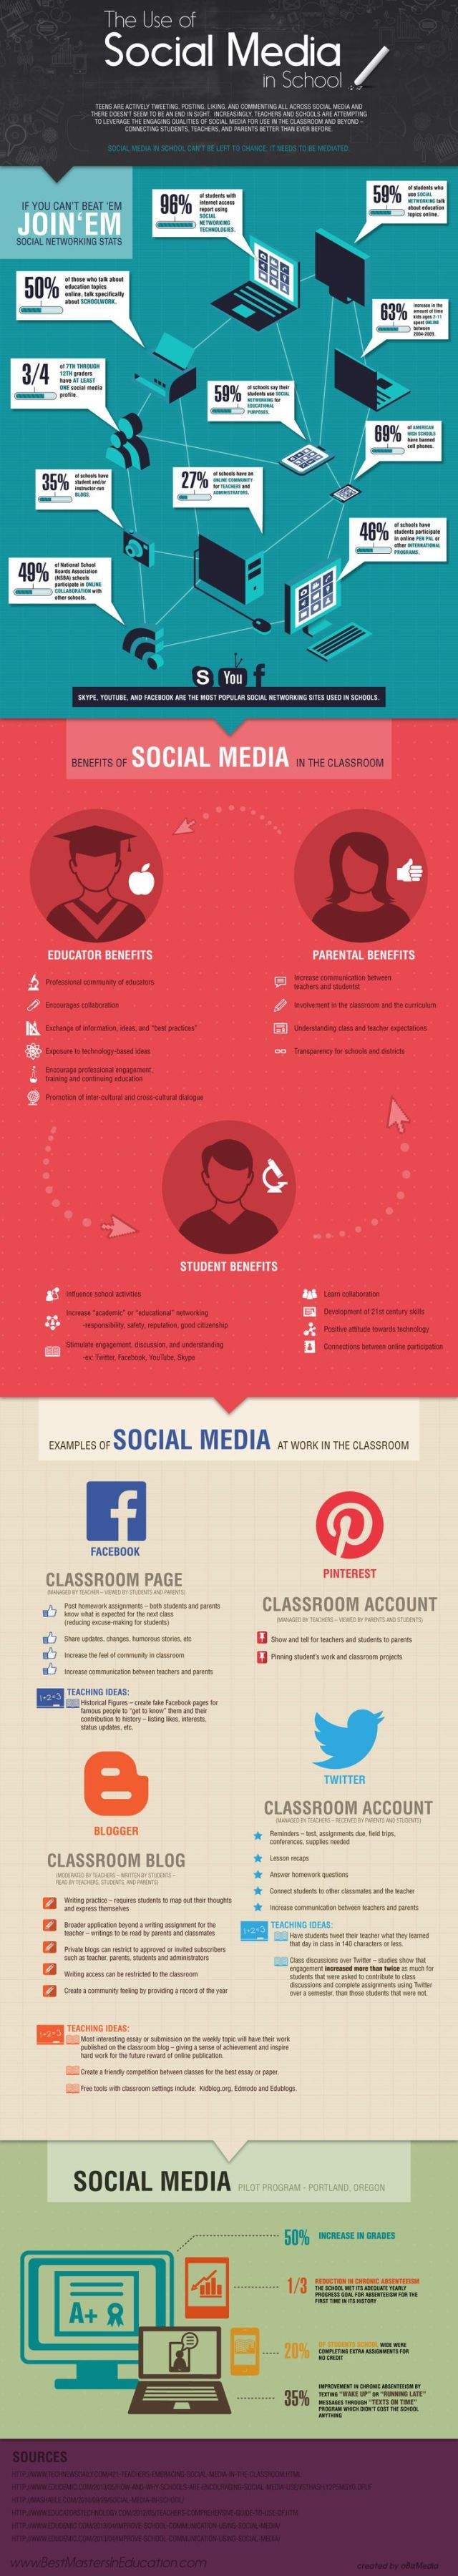 Educational : Social Media 101: Is There a Place For Social Media in Classrooms?  Digital Inf